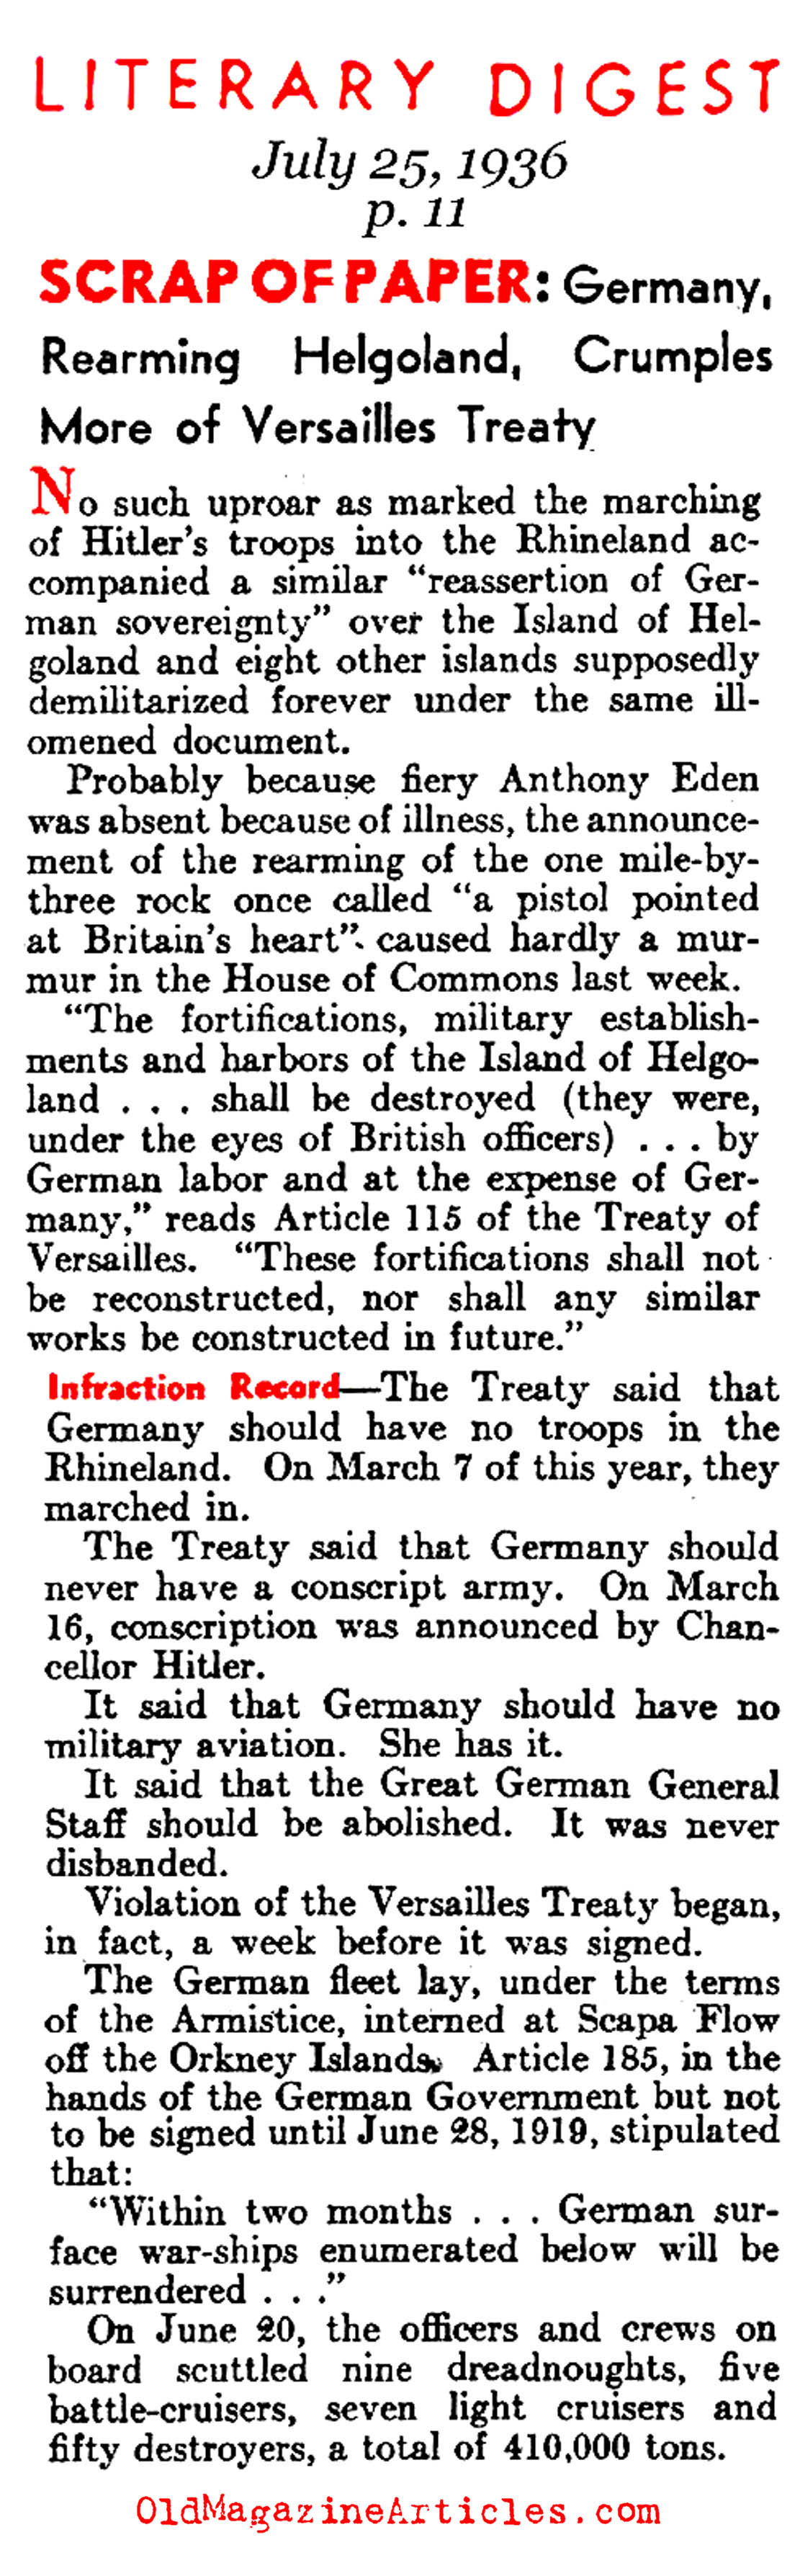 Versailles Treaty Violations (Literary Digest, 1936)